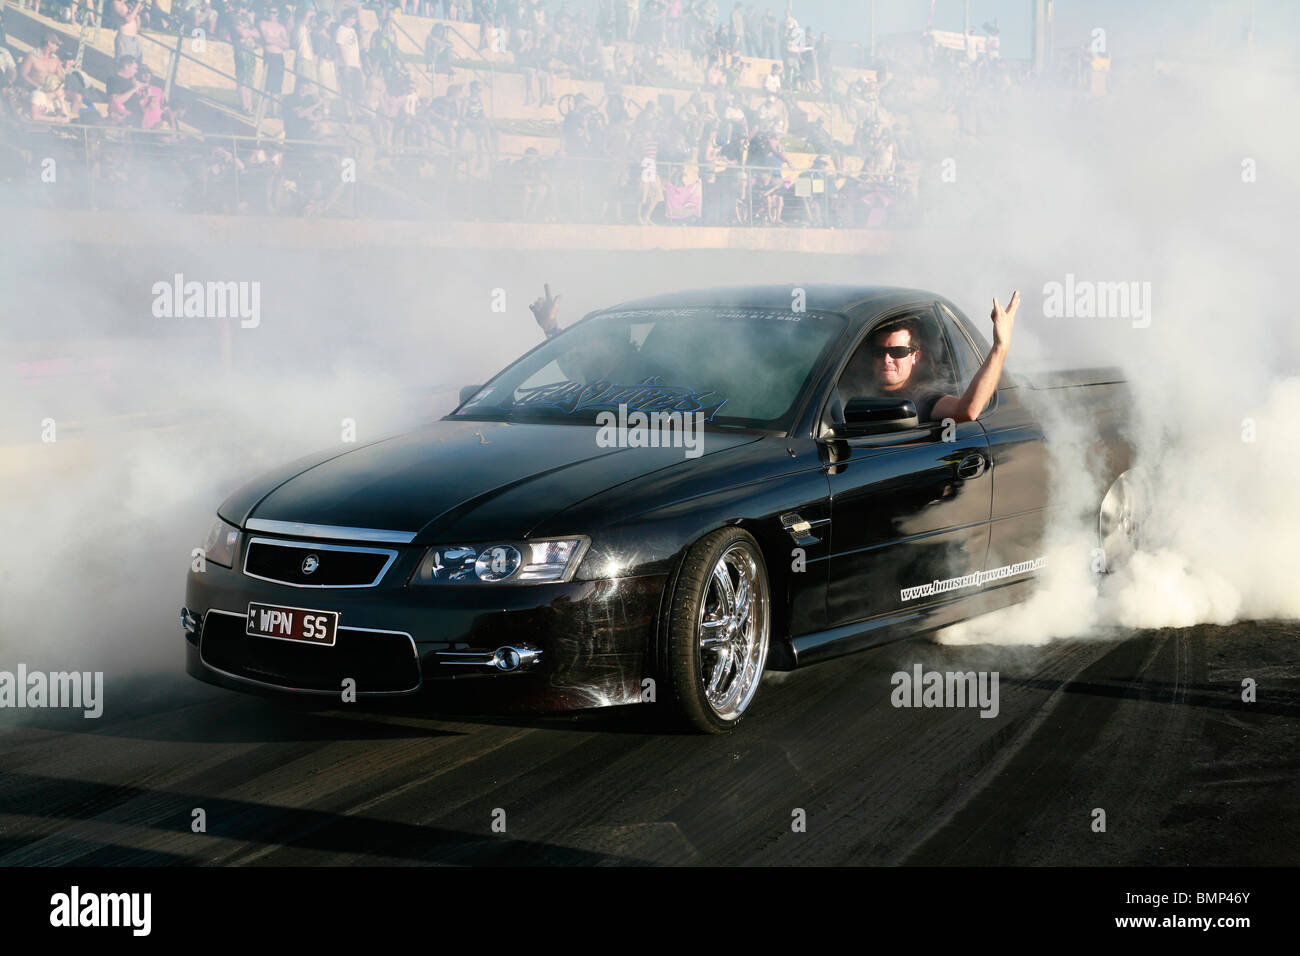 Holden utility or pick up truck performing a massive tyre tire smoking burnout at an Australian lifestyle car show - Stock Image